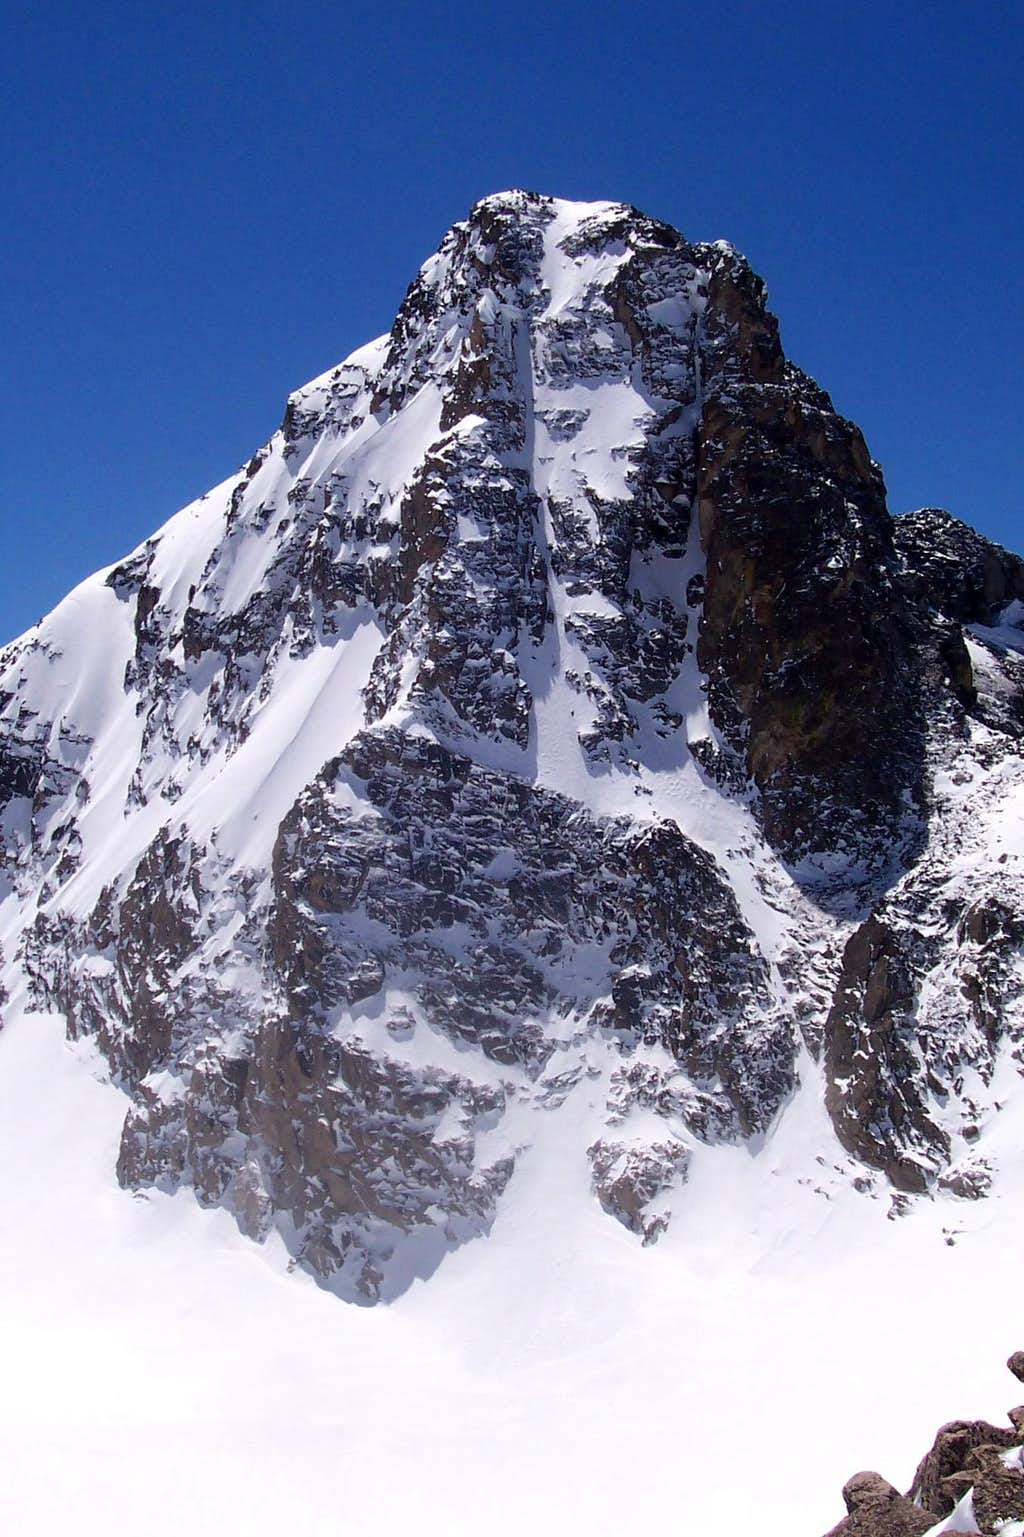 North Face of Mt Toll